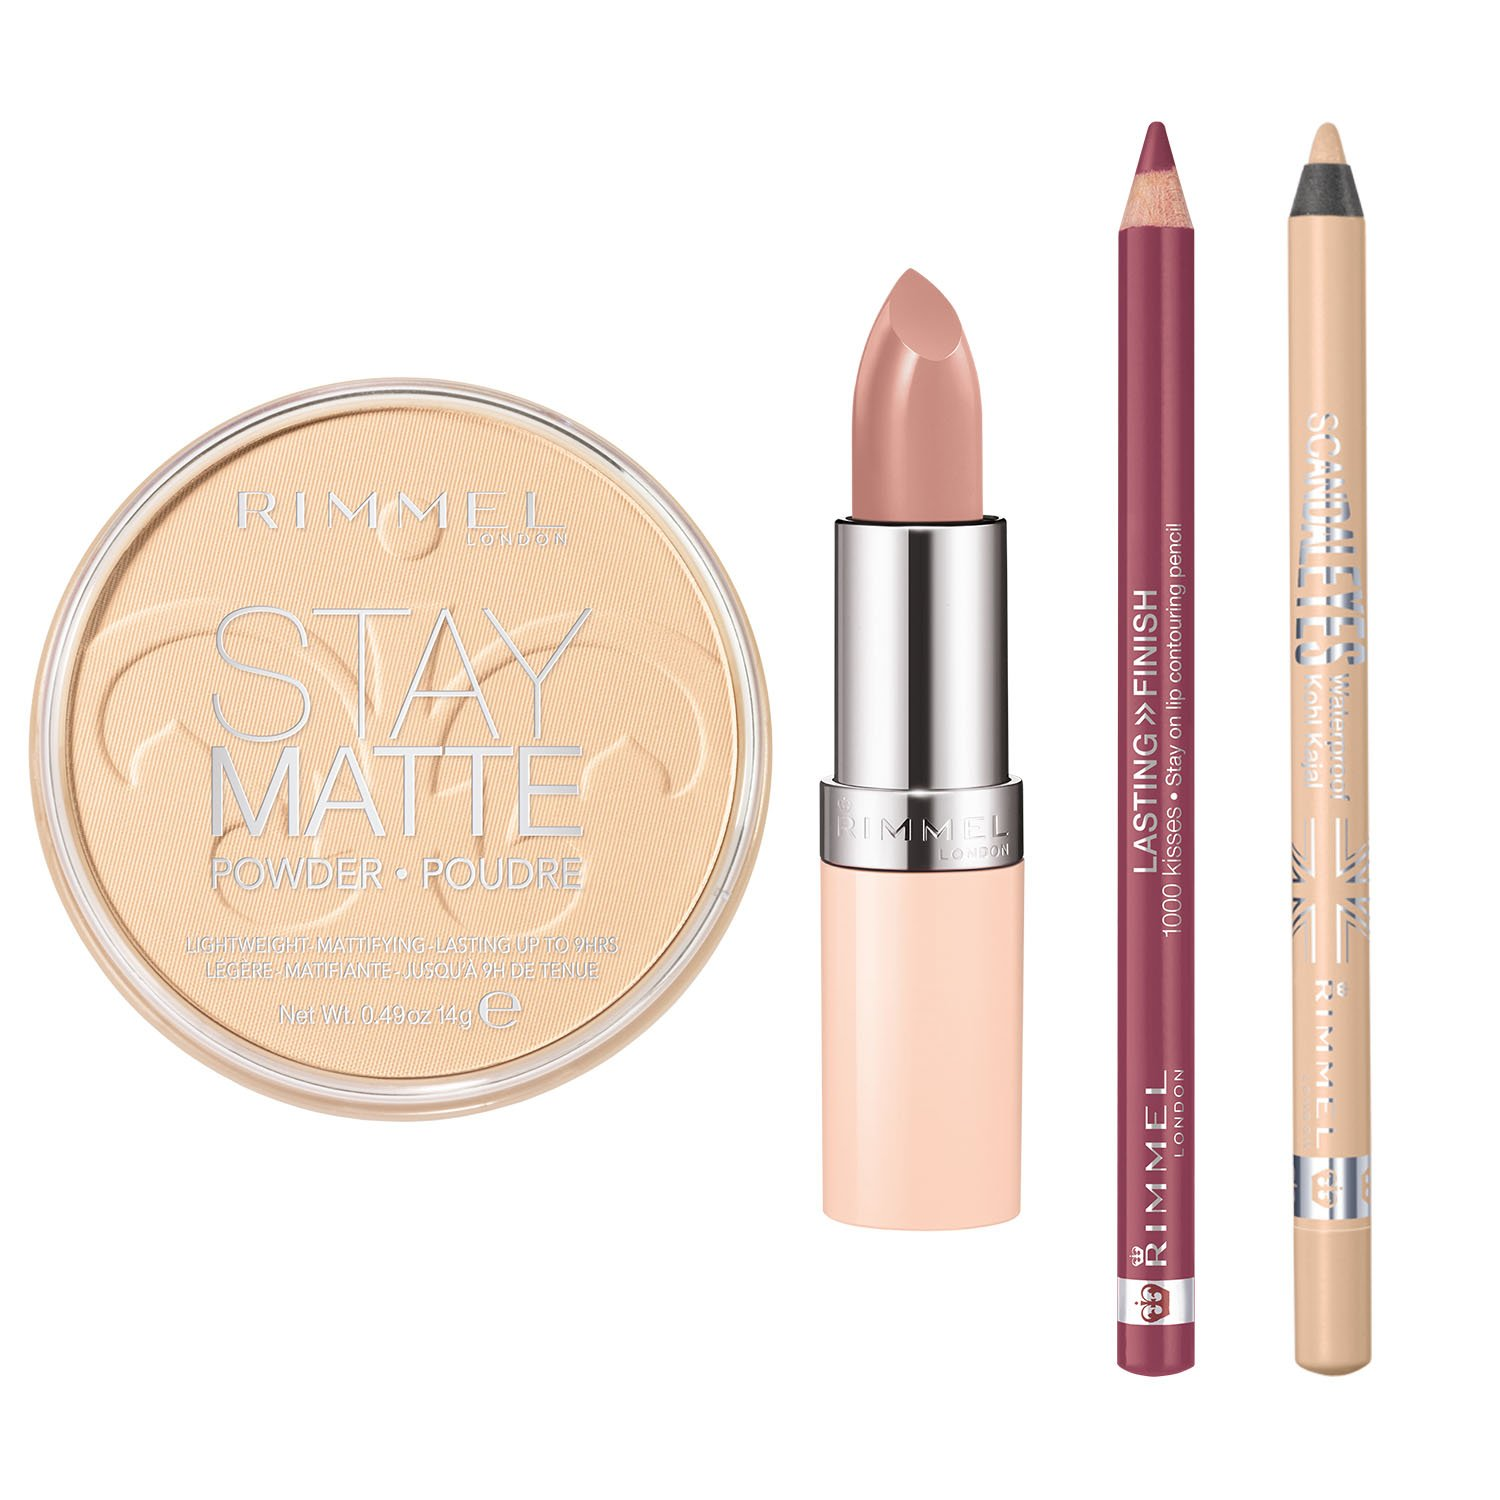 Rimmel Nude Collection Kit with Lasting Finish 1000 Kisses Lip Liner, Lasting Finish Nude Lipstick, Scandaleyes Waterproof Kohl Kajal Eyeliner and Stay Matte Pressed Powder, Multi